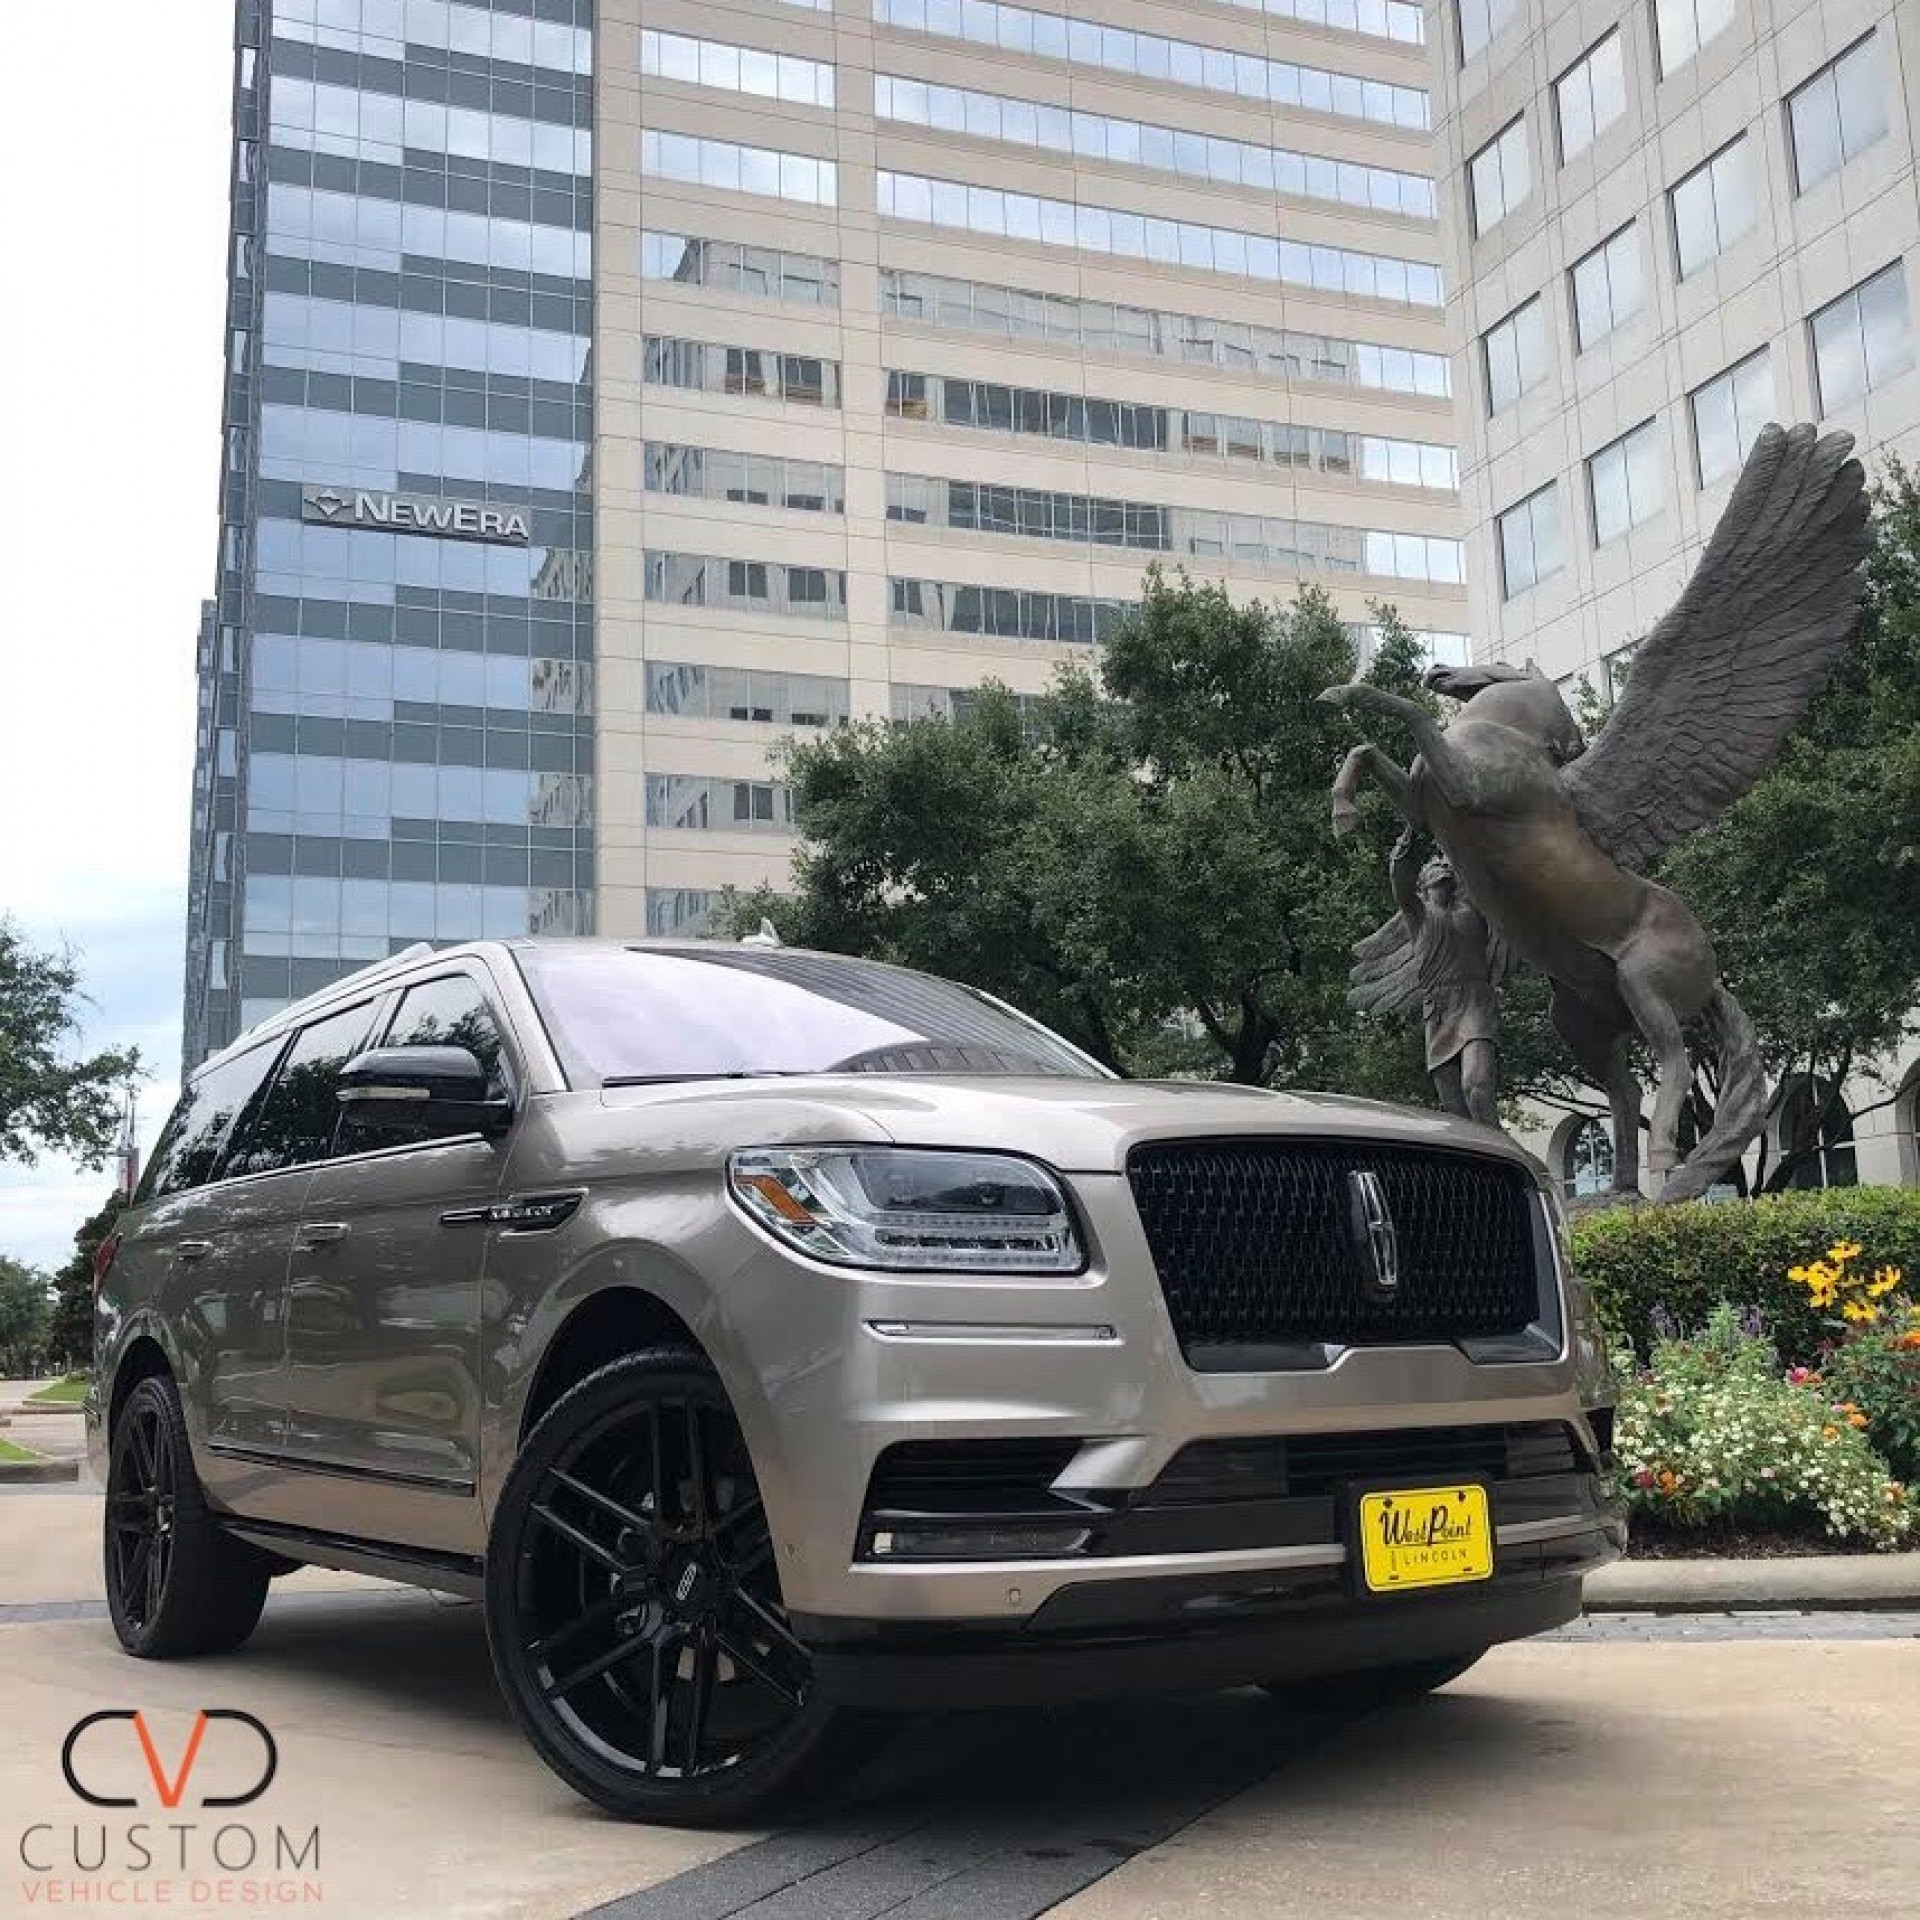 "2020 Ice Mocha Lincoln Navigator with 24"" Vogue Signature V Tyres & 24"" Titan wheels (Custom Blackout Package)"